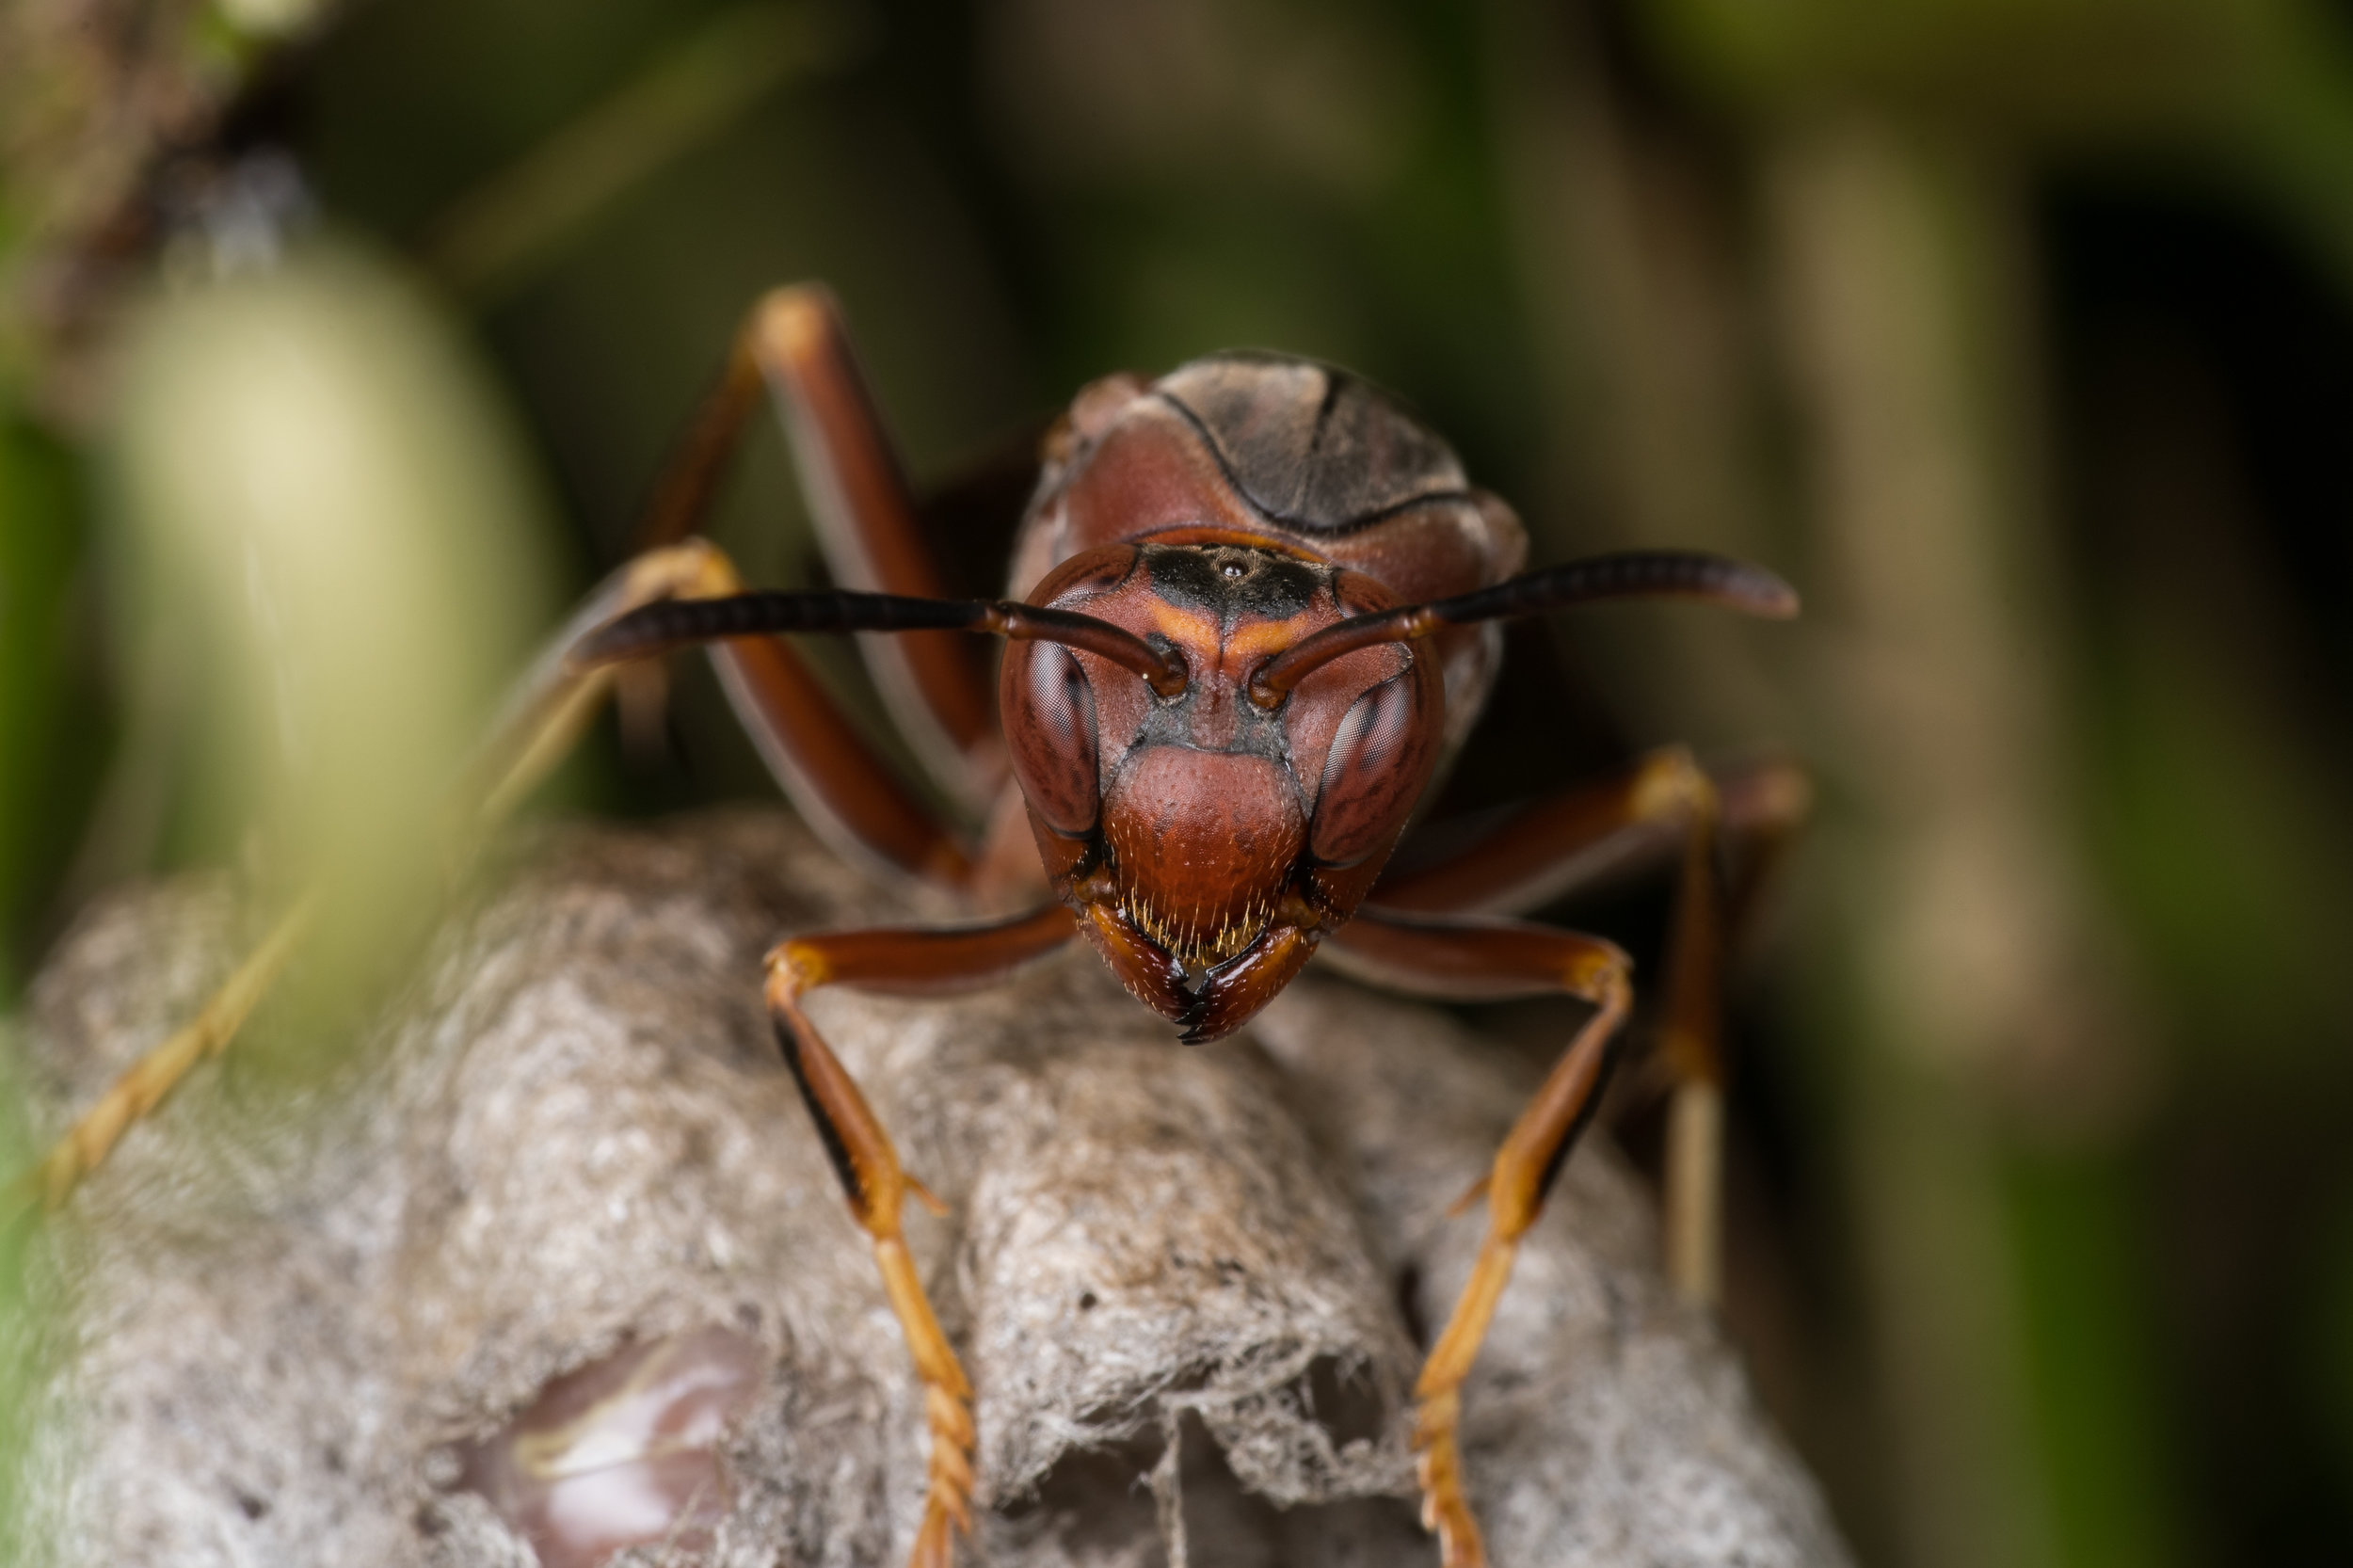 Paper Wasp - Nikon D500, Tamron 90mm SP and Raynox DCR-250)